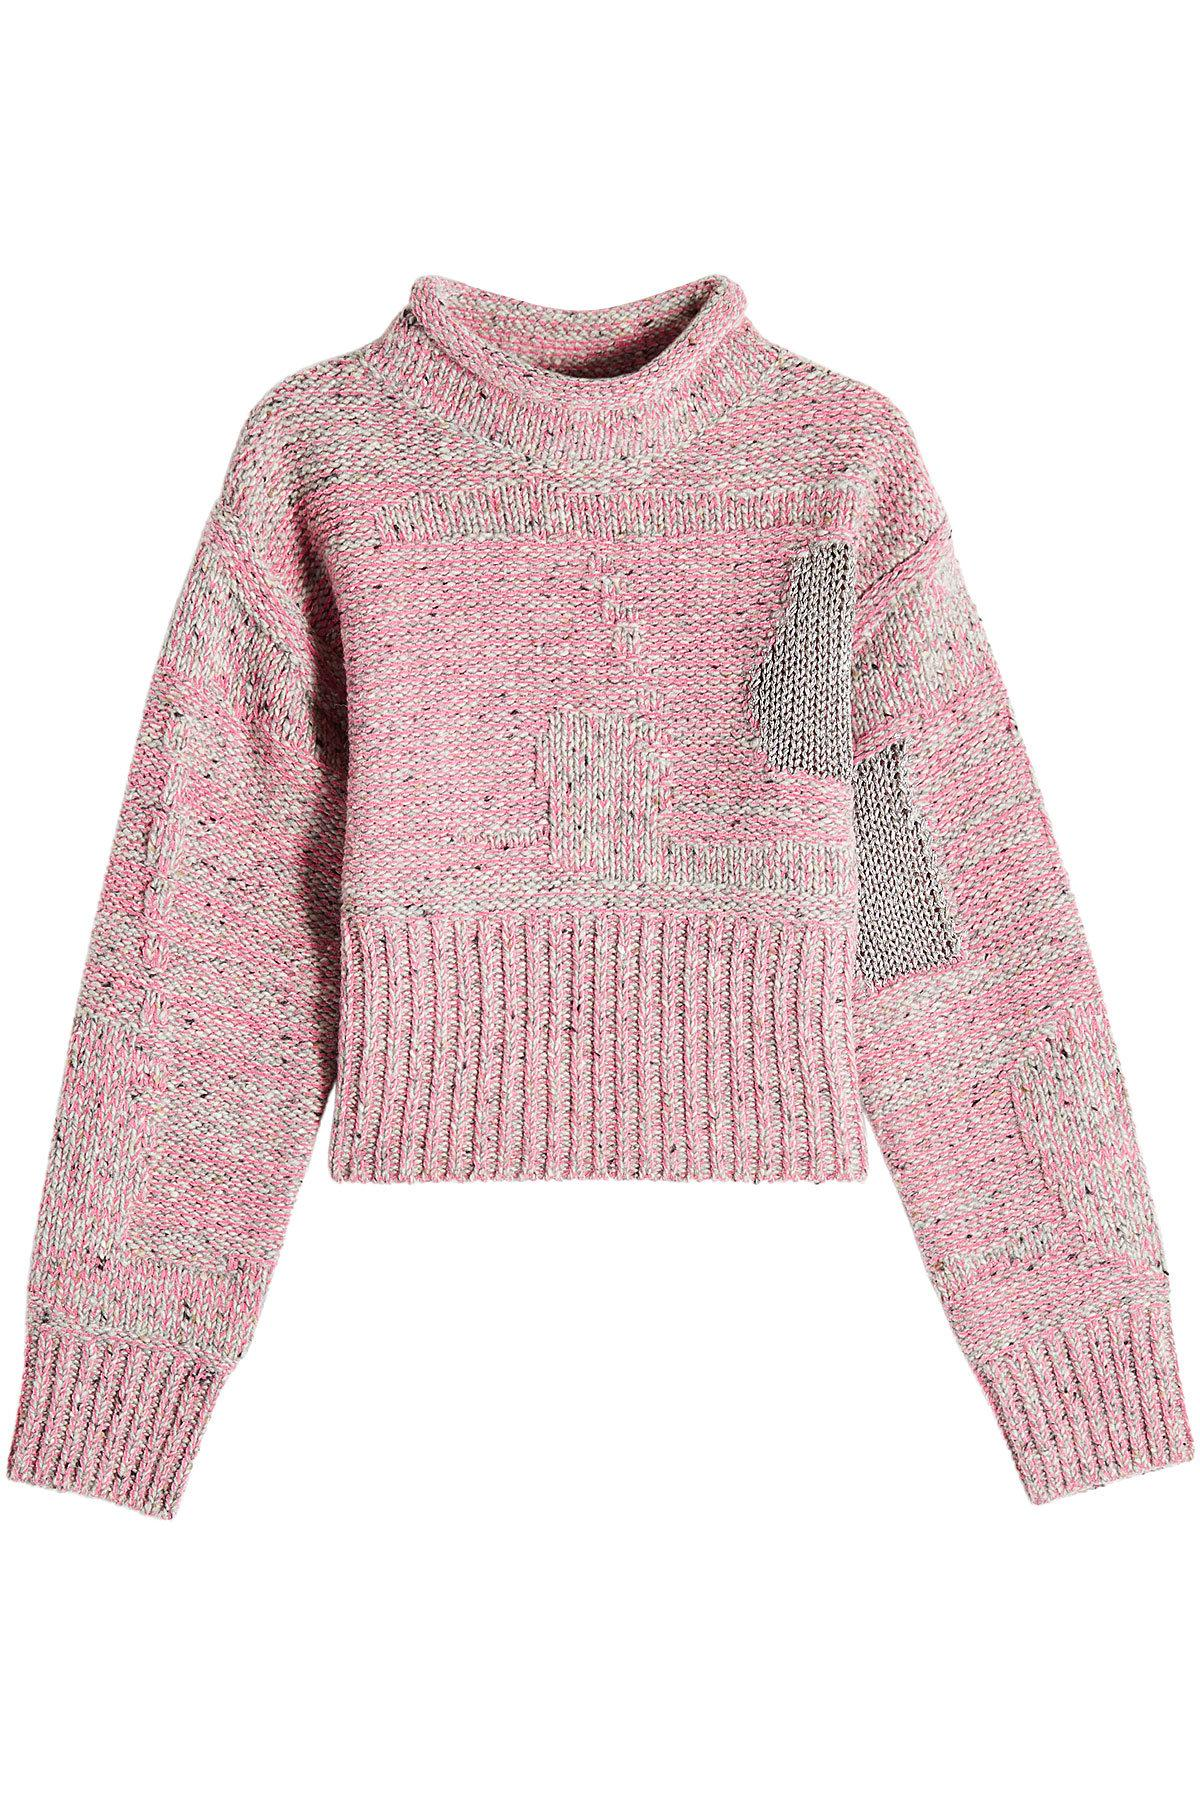 3.1 Phillip Lim Woman Metallic Wool-Blend Sweater Pink In Candy Pink